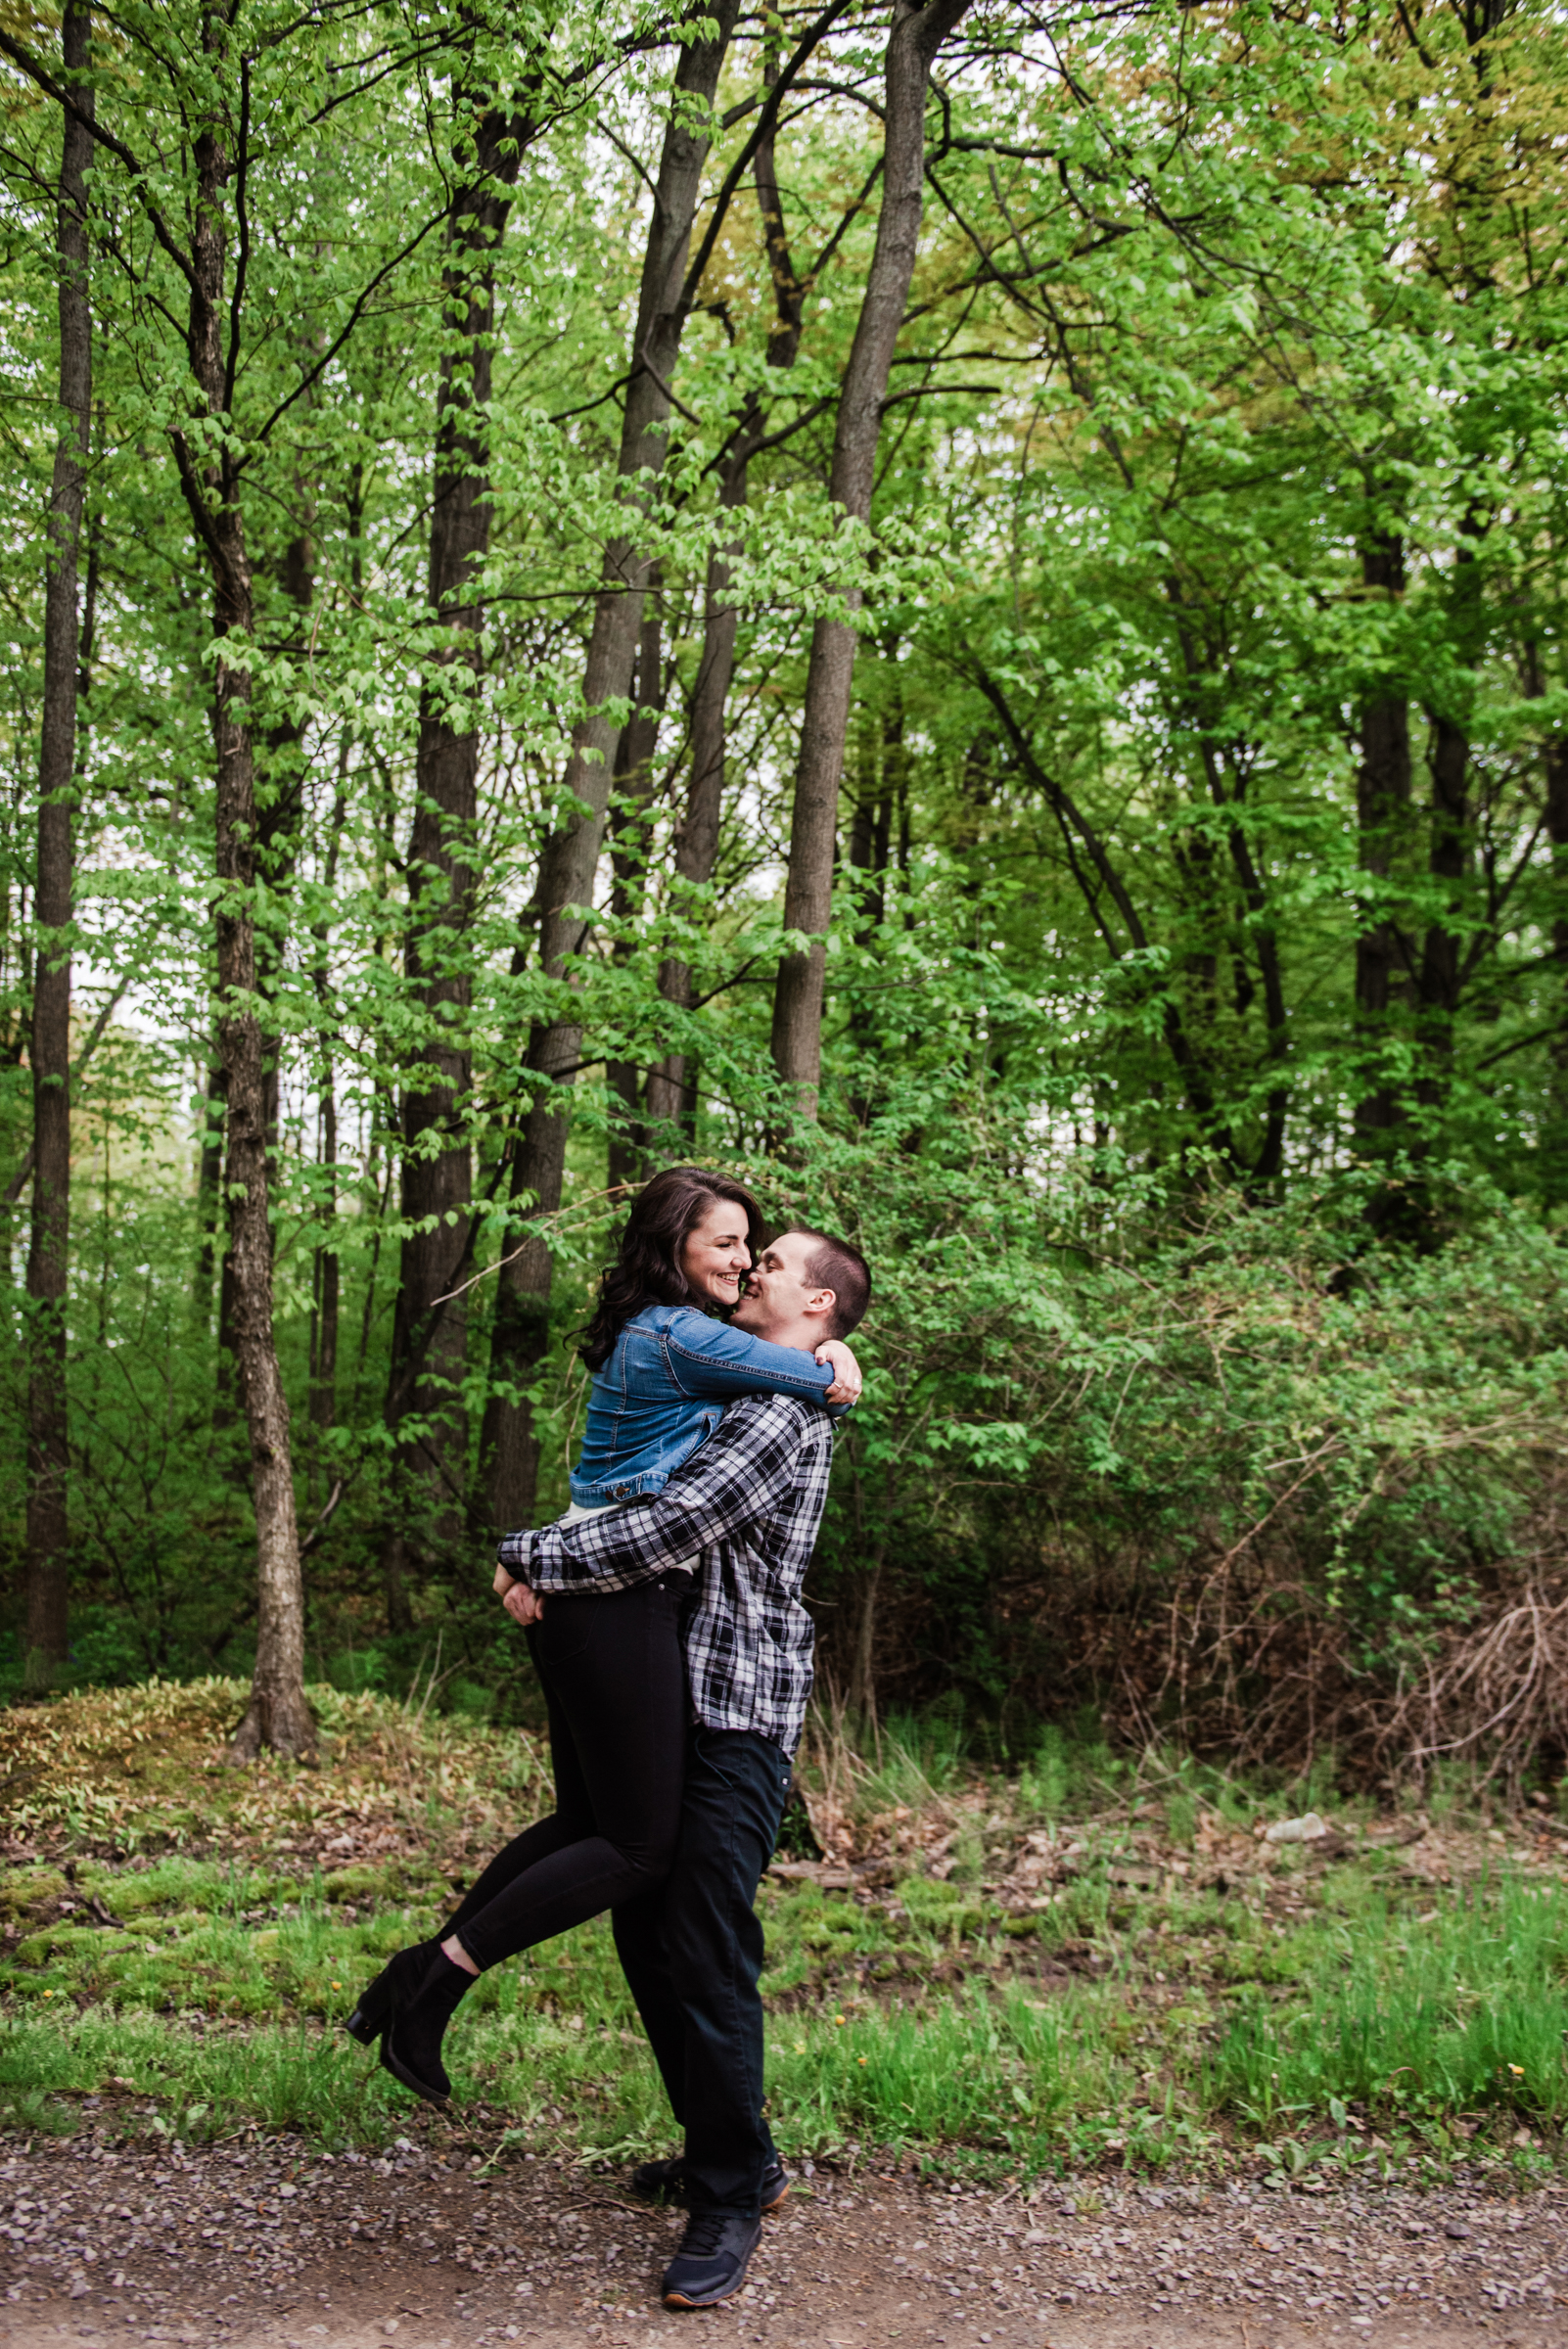 Fox_Farm_Rochester_Couples_Session_JILL_STUDIO_Rochester_NY_Photographer_DSC_7433.jpg